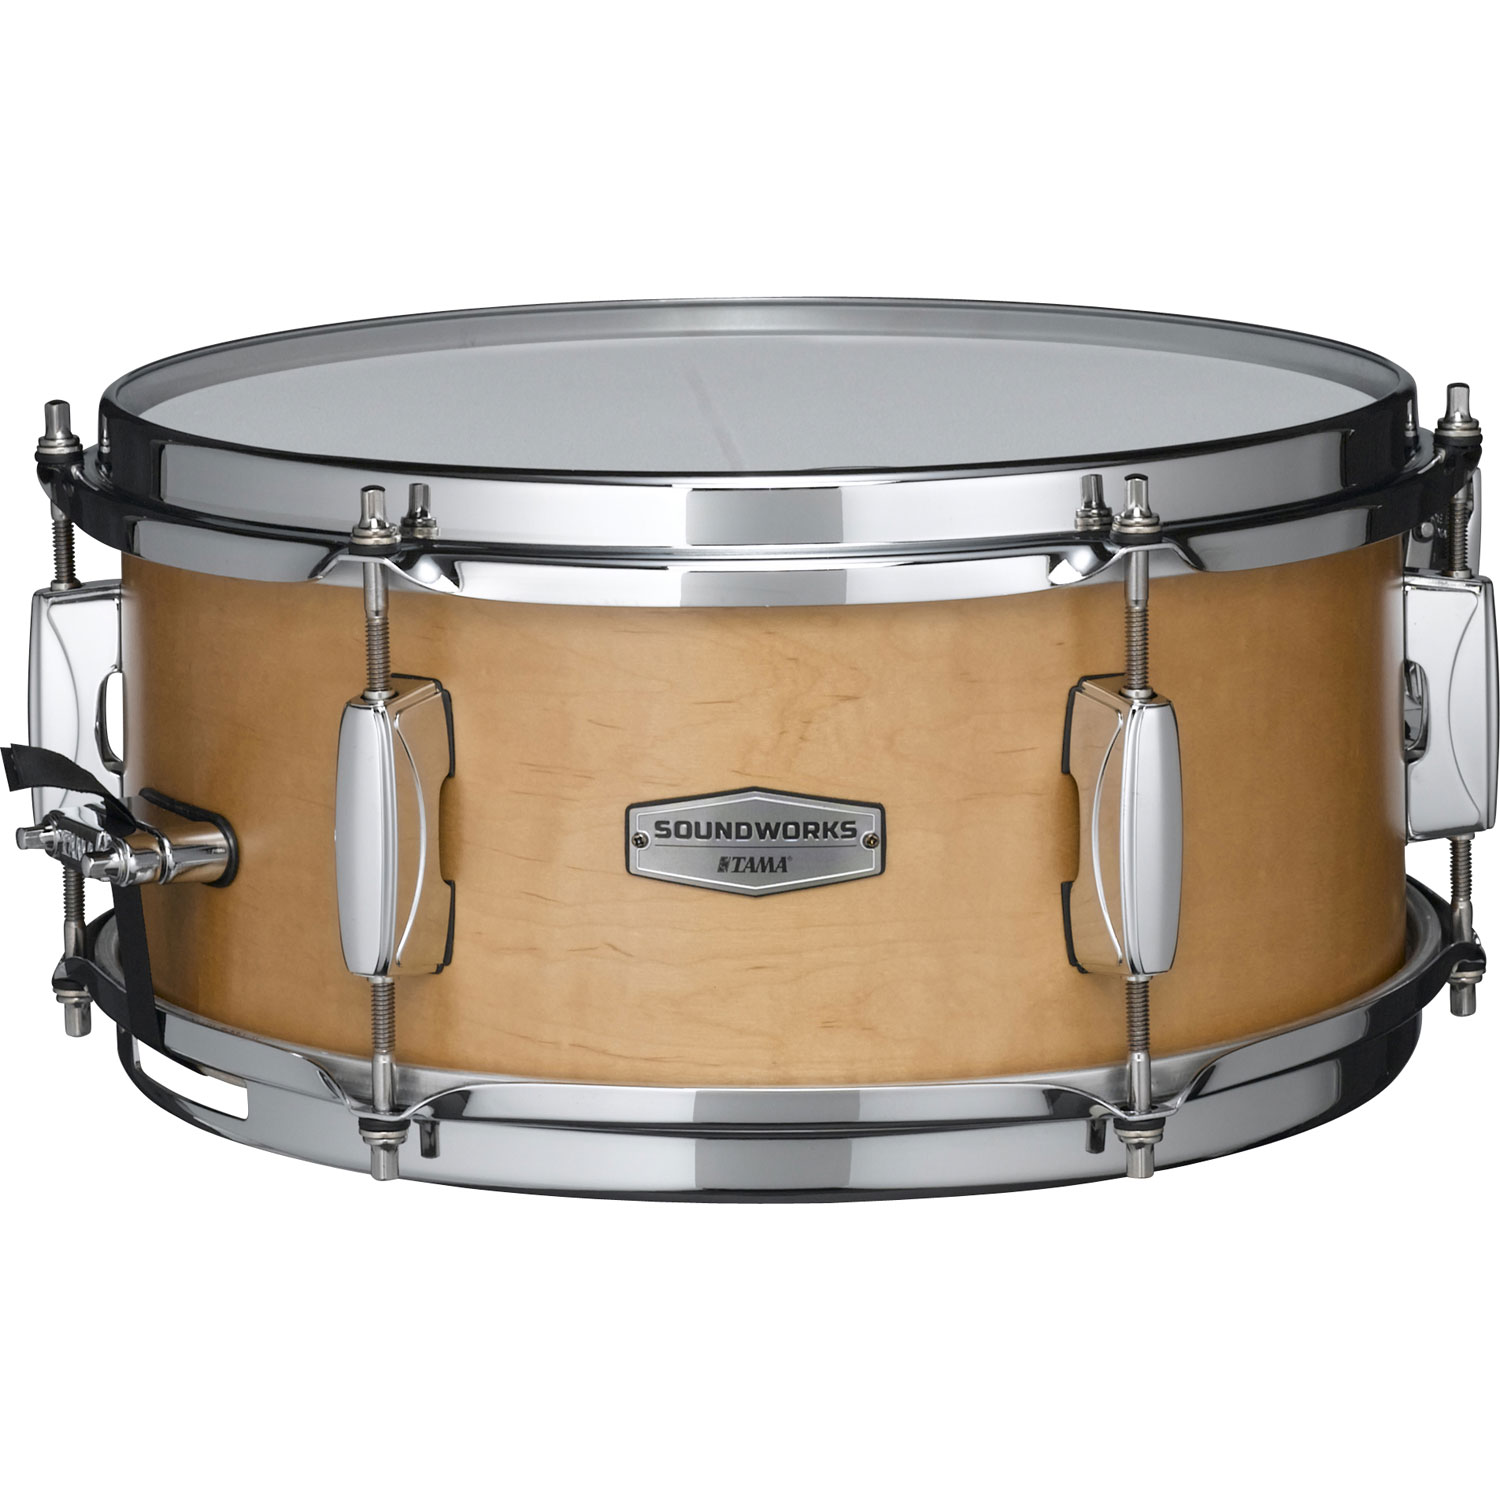 "Tama 5.5"" x 12"" Soundworks Maple Snare Drum"